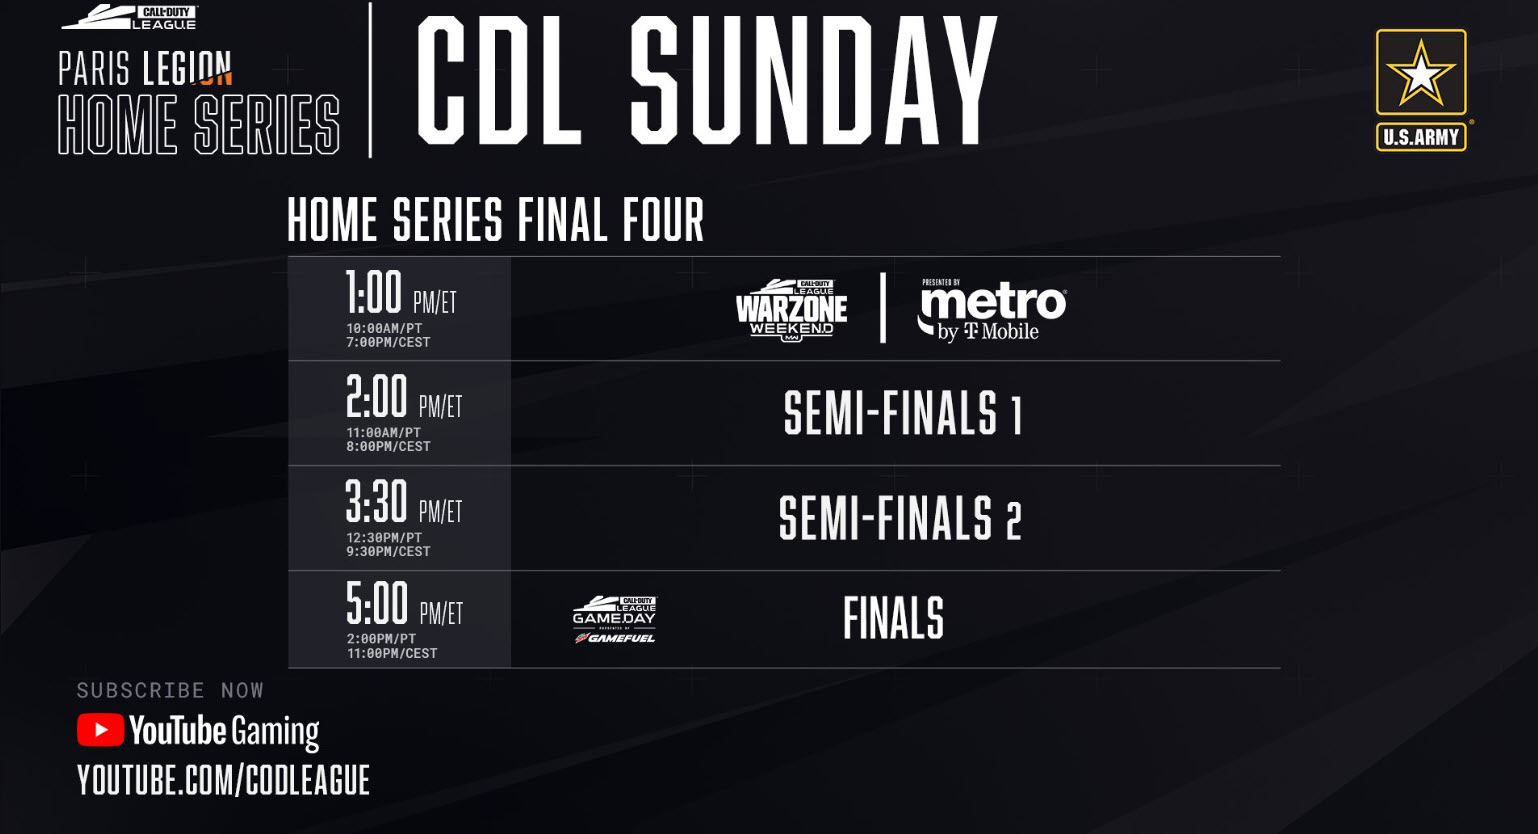 Call of Duty Paris Legion Home Series Sunday Schedule 2020